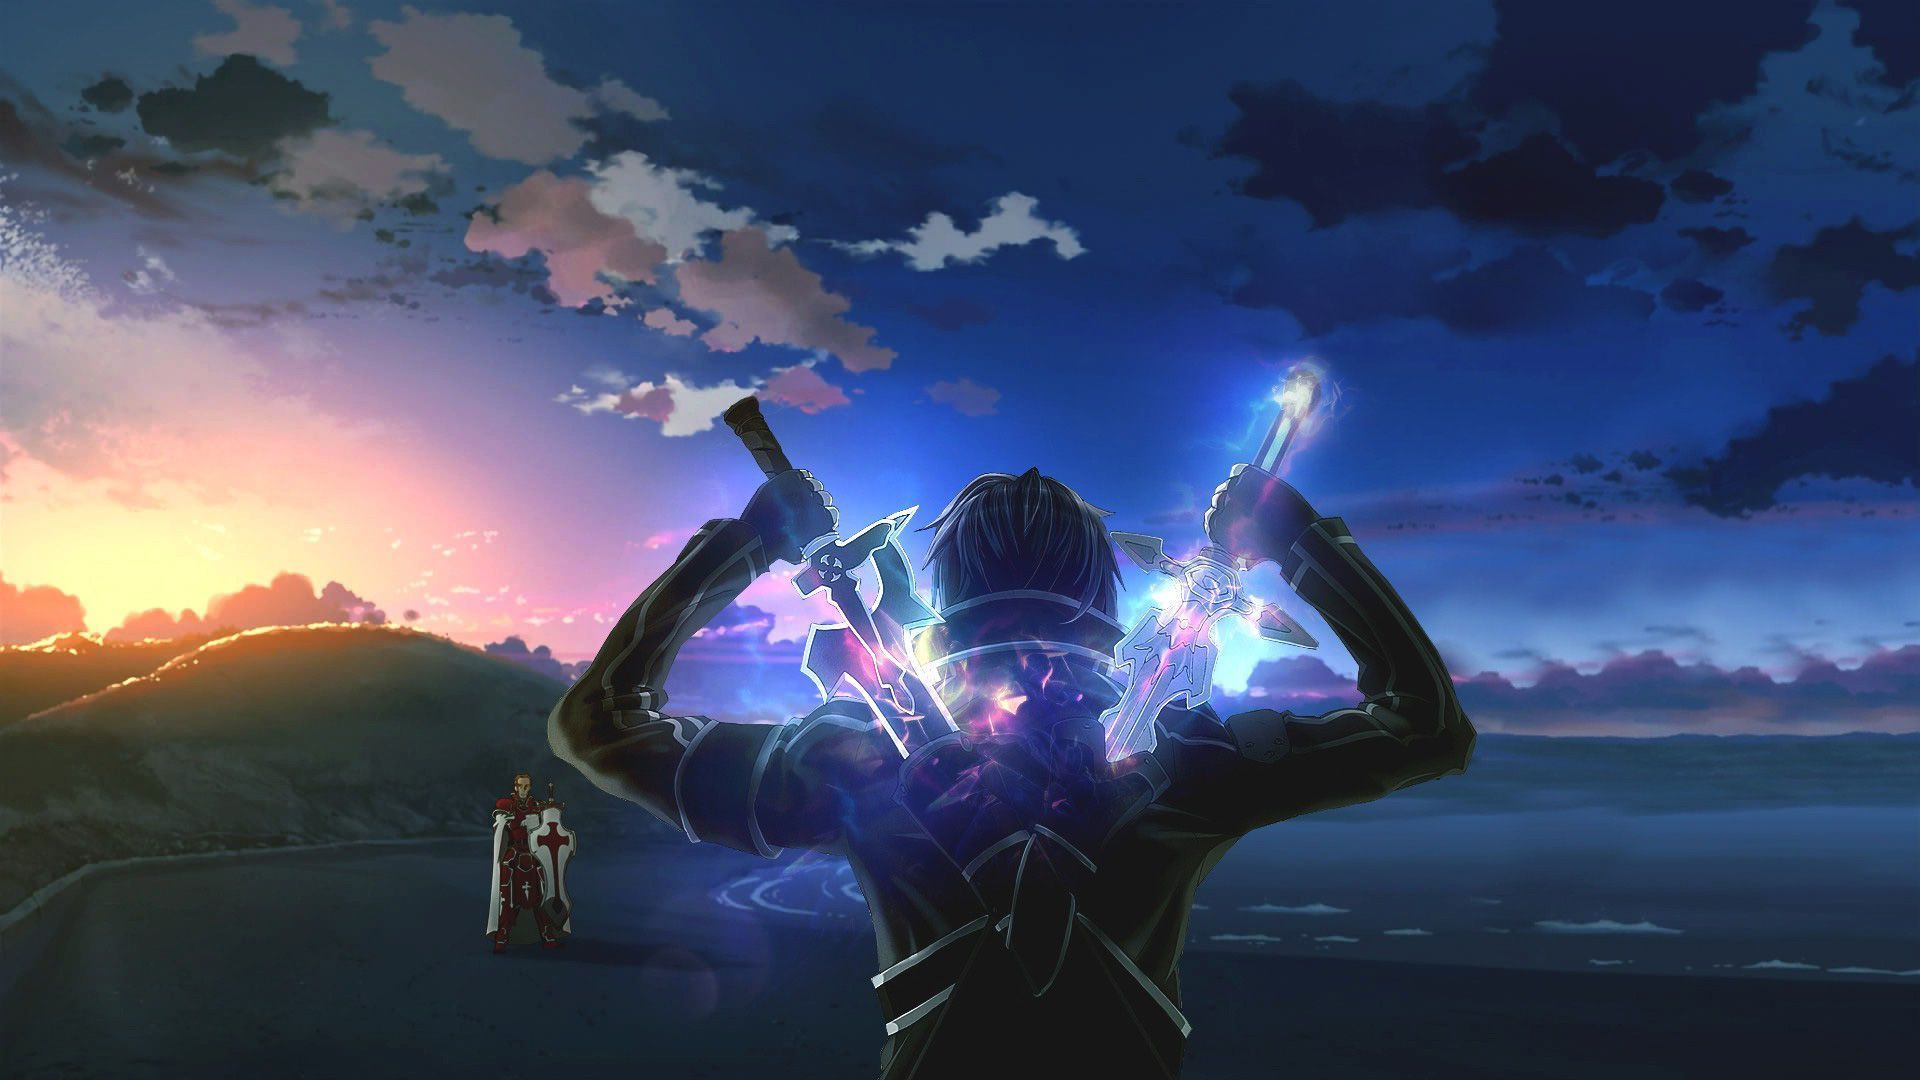 Fight Sword Art Online Anime Wallpaper Fondos de